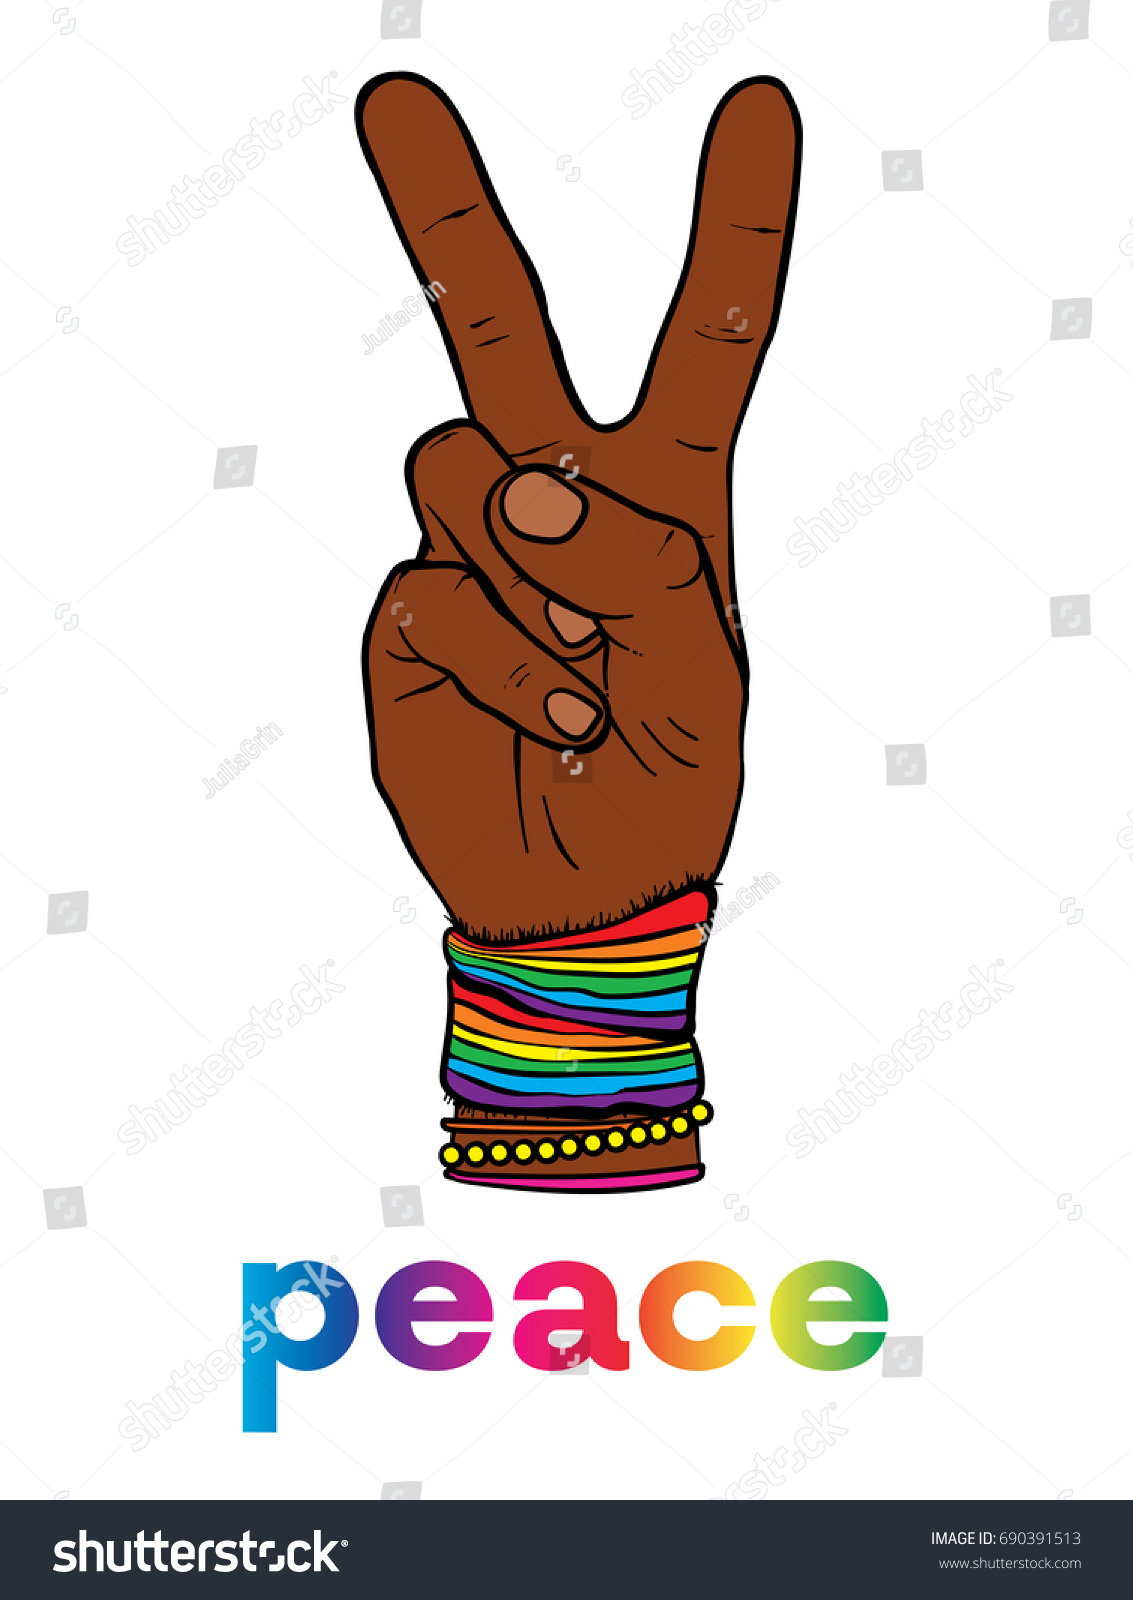 Symbol pacifism hippies hand two fingers stock vector 690391513 the symbol of pacifism and hippies is a hand with two fingers against racism biocorpaavc Images